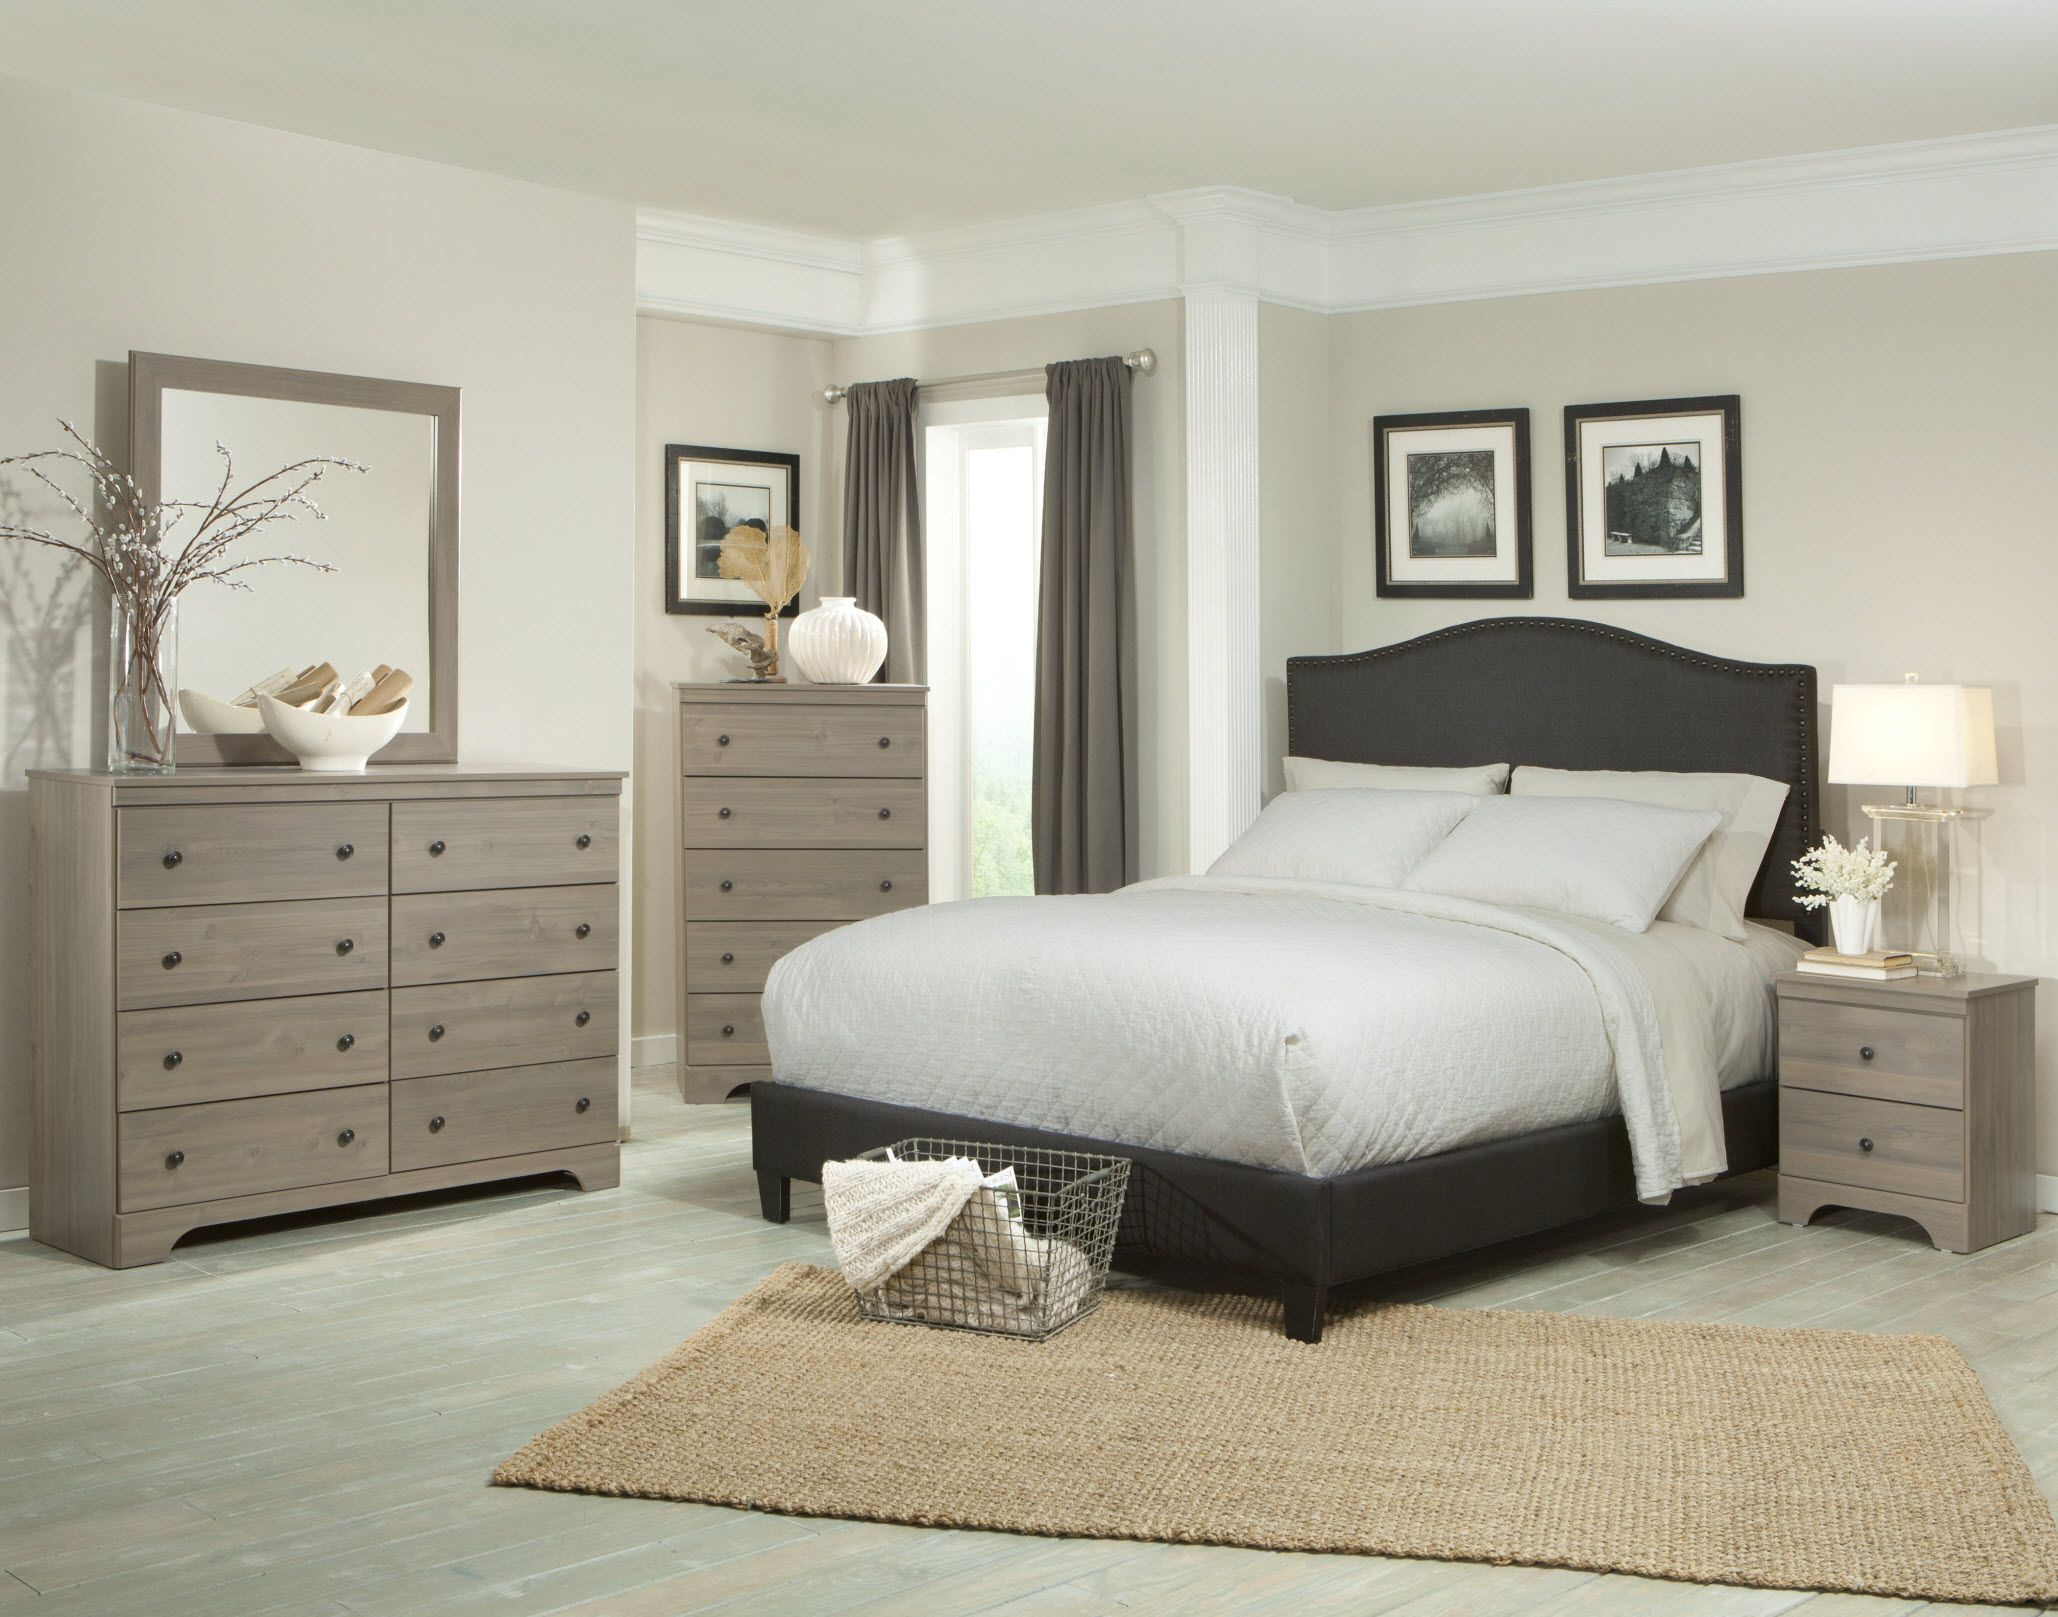 Grey Bedroom Furniture Ornate Wooden Ikea Bedroom Transitional Furniture Sets With Queen